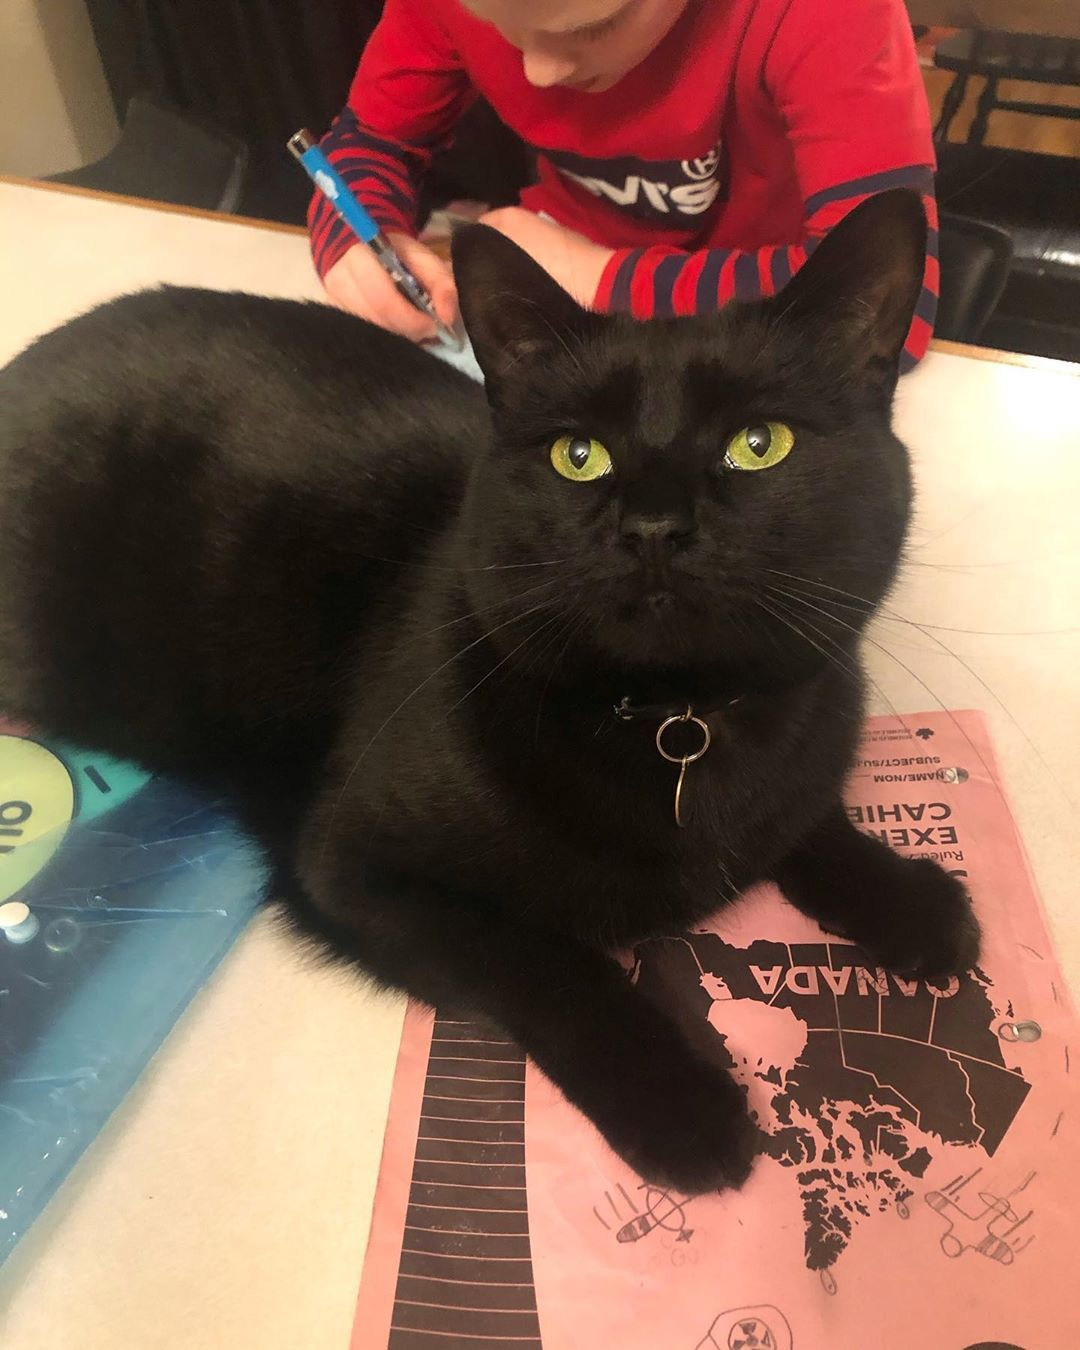 I Is A Big Help Wis Homework In 2020 Cats Cats And Kittens Animals